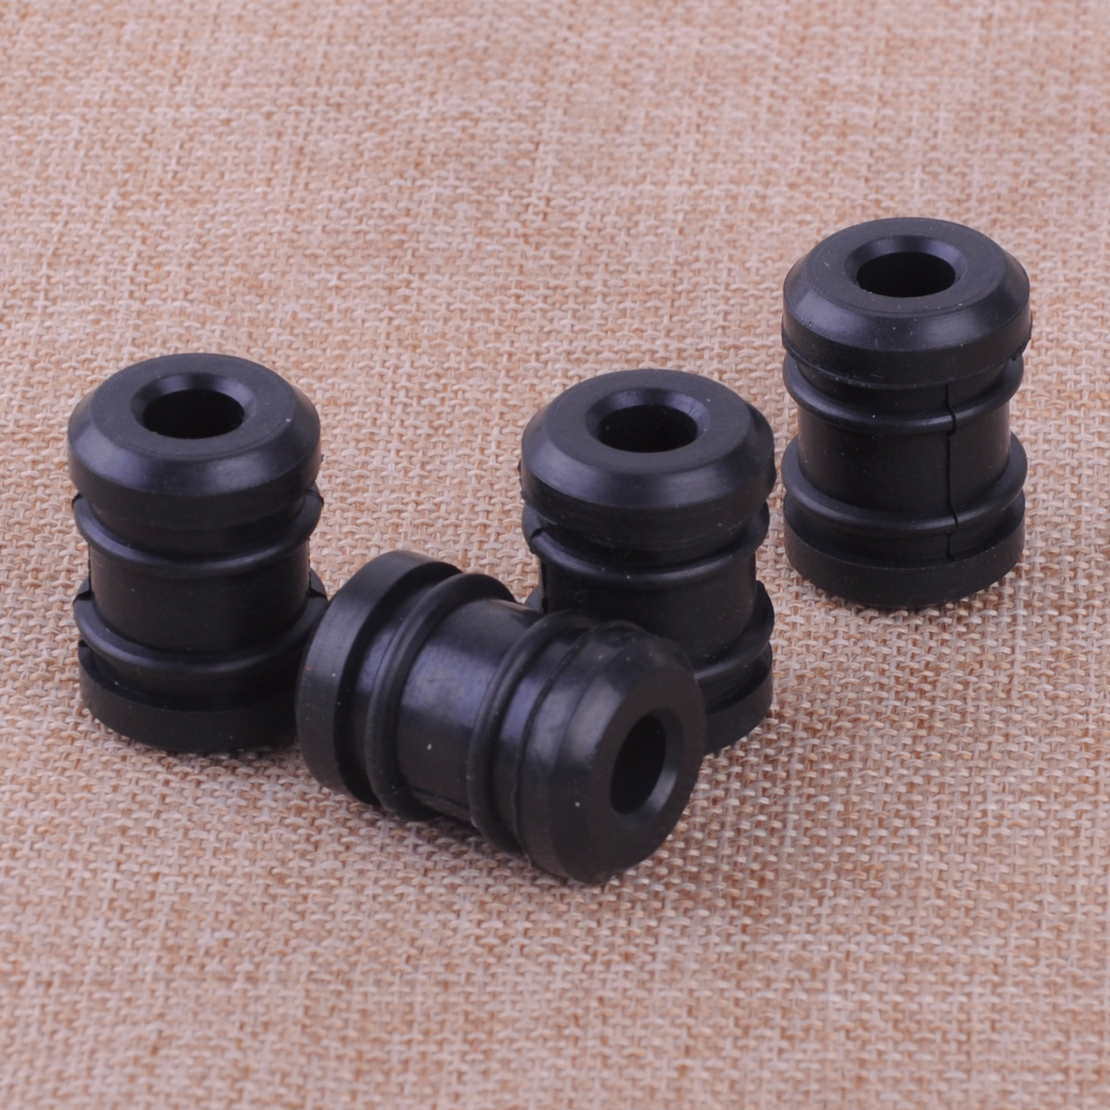 4pcs Buffer Replacement Fit for STIHL Chainsaw 021 023 025 MS250 MS230 MS210